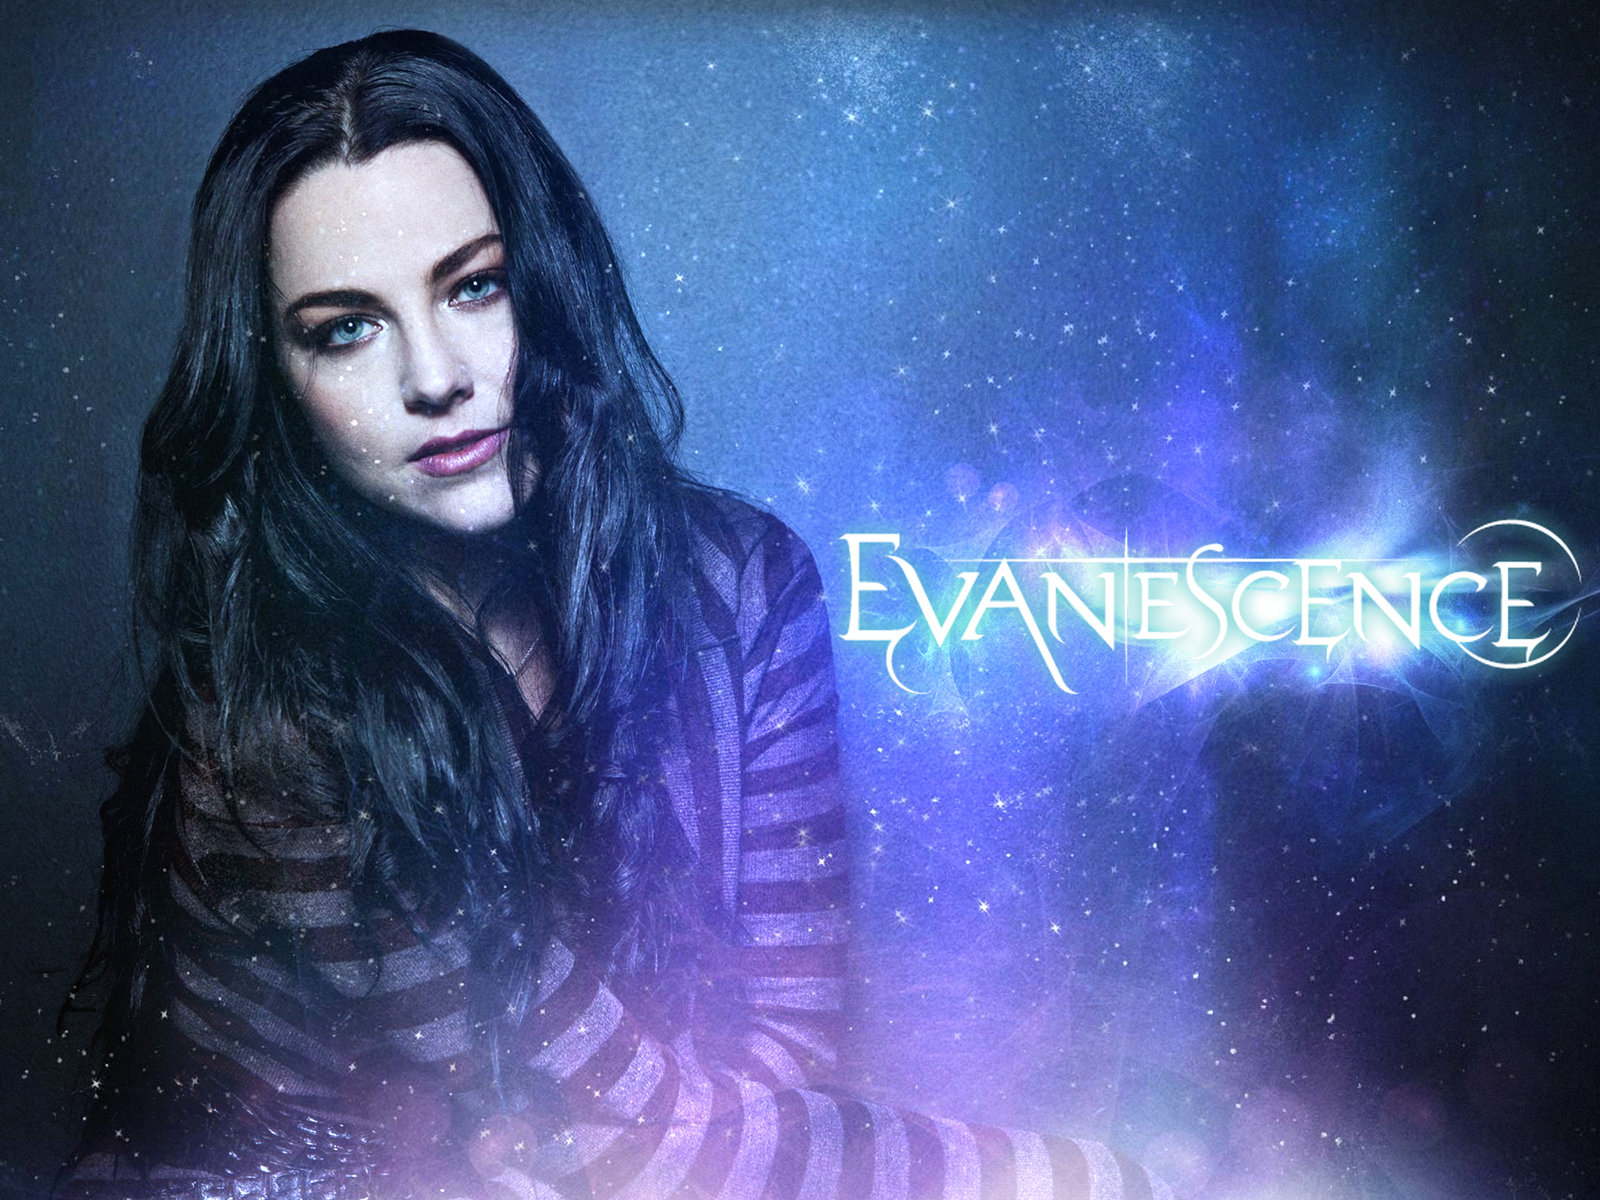 Evanescence   Evanescence Wallpaper 30515076 1600x1200